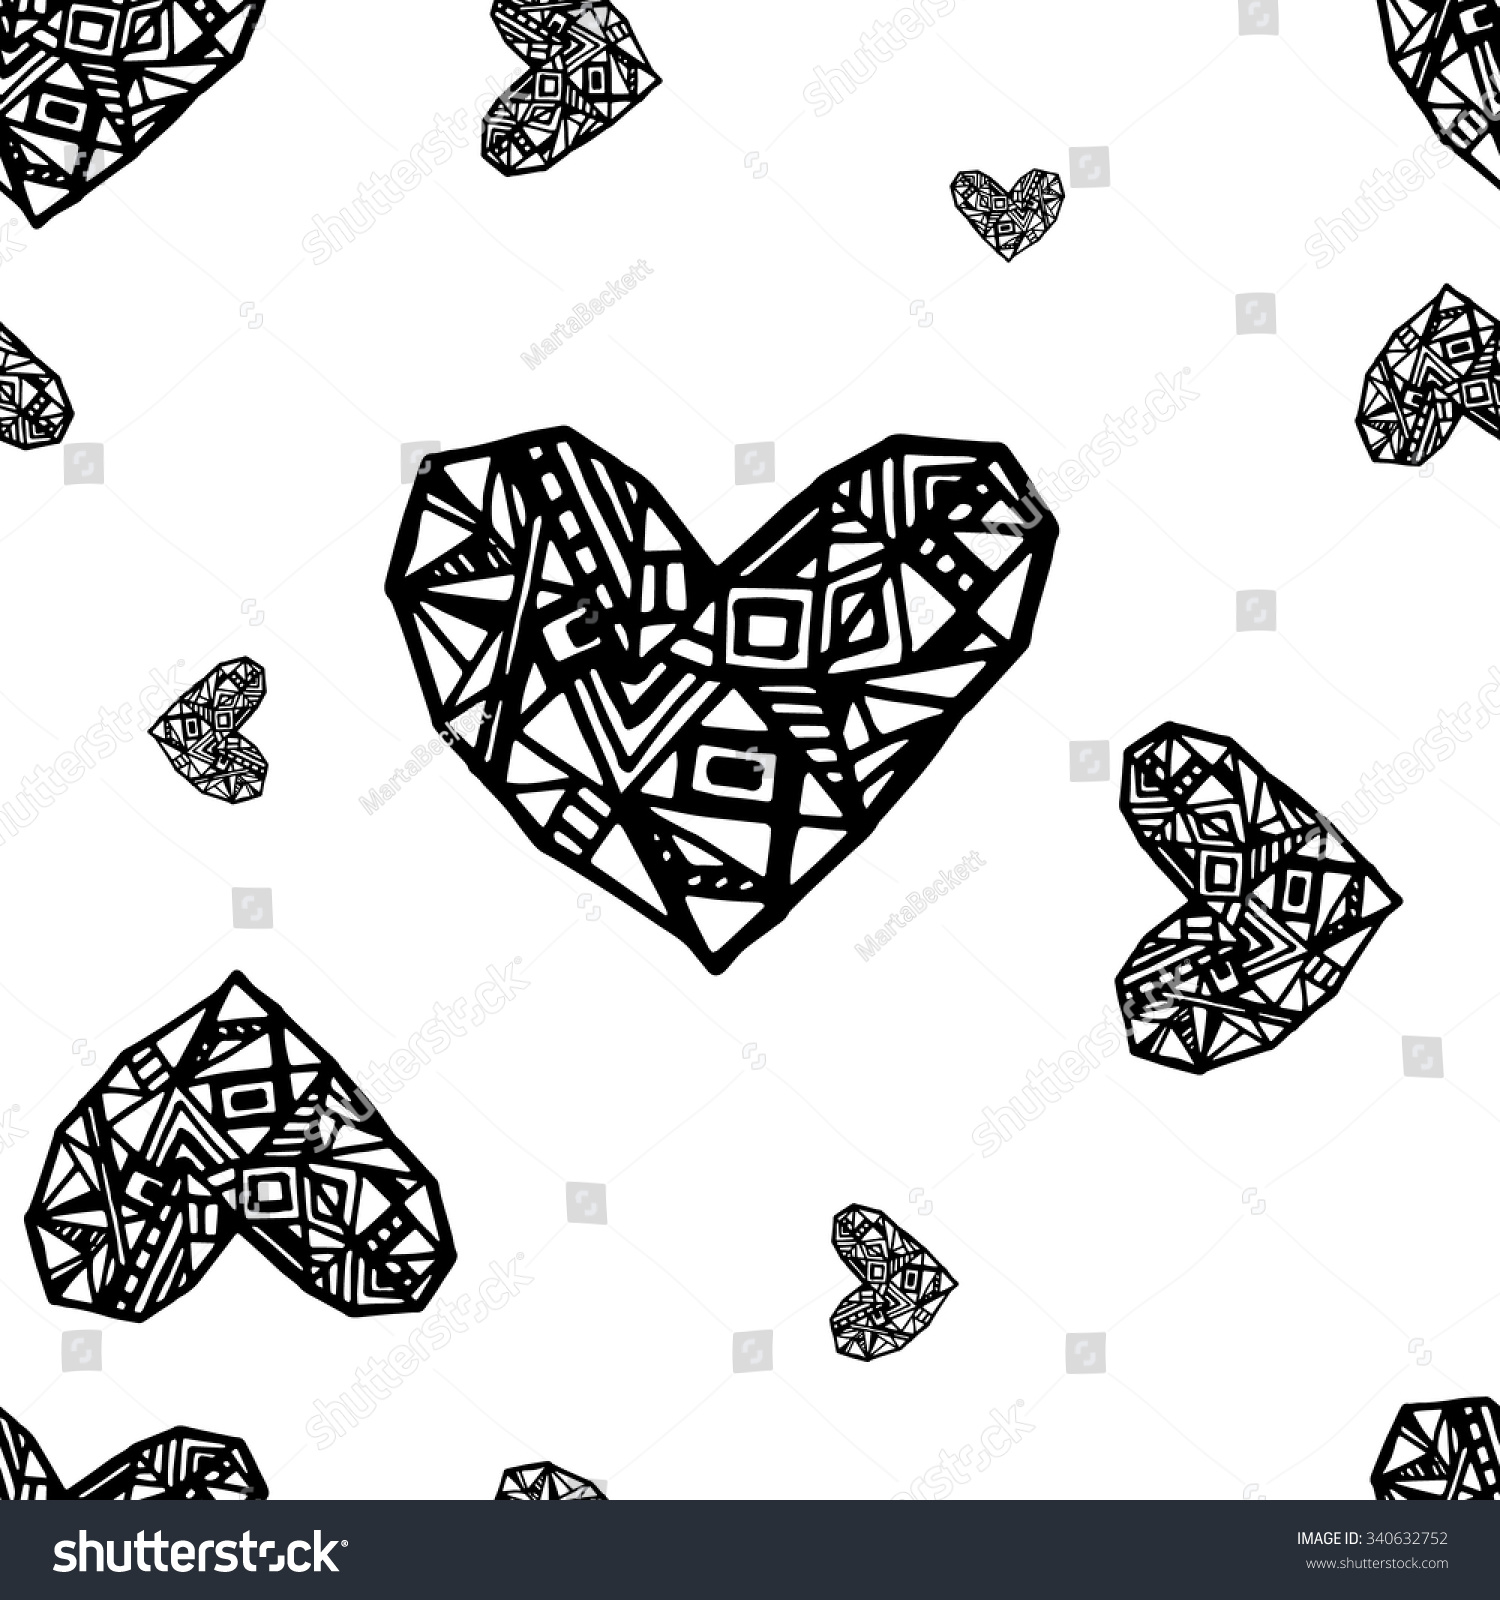 Romantic vector seamless background greeting card wallpaper vector art - Abstract Vector Black Heart On White Seamless Background Best Simple Pattern For Cards Fabric